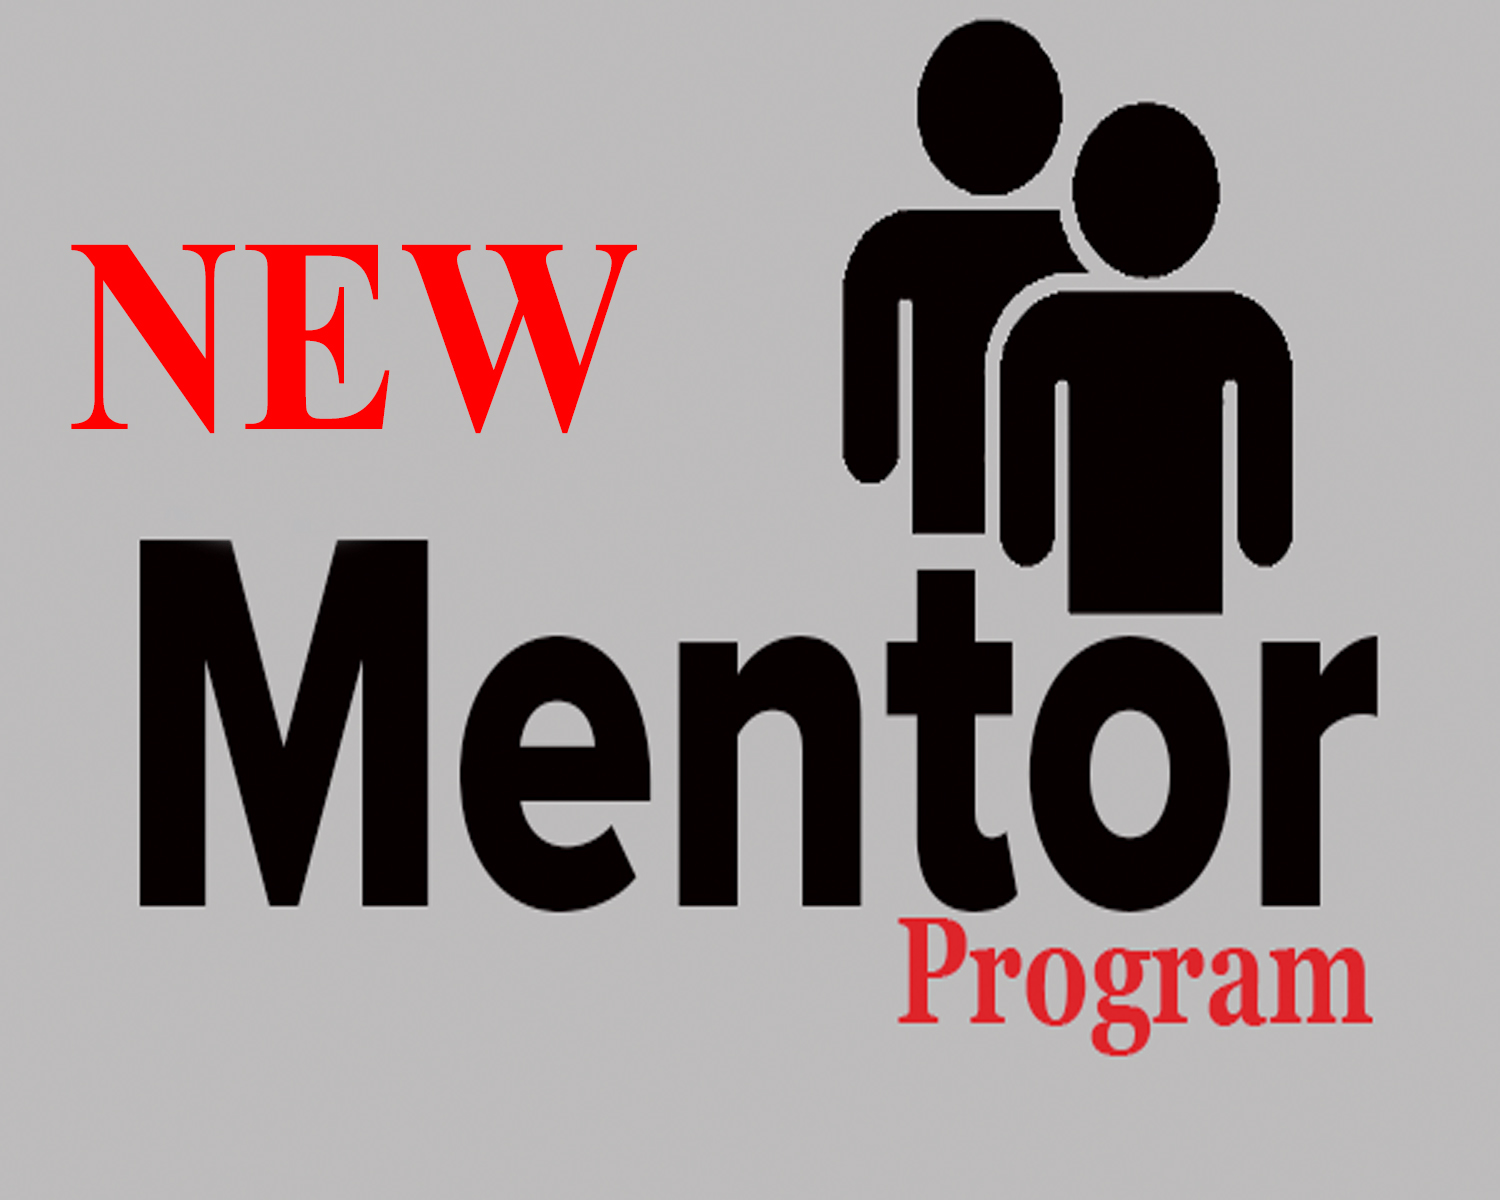 Details of New Mentor Programs Added to help the Students in Canada